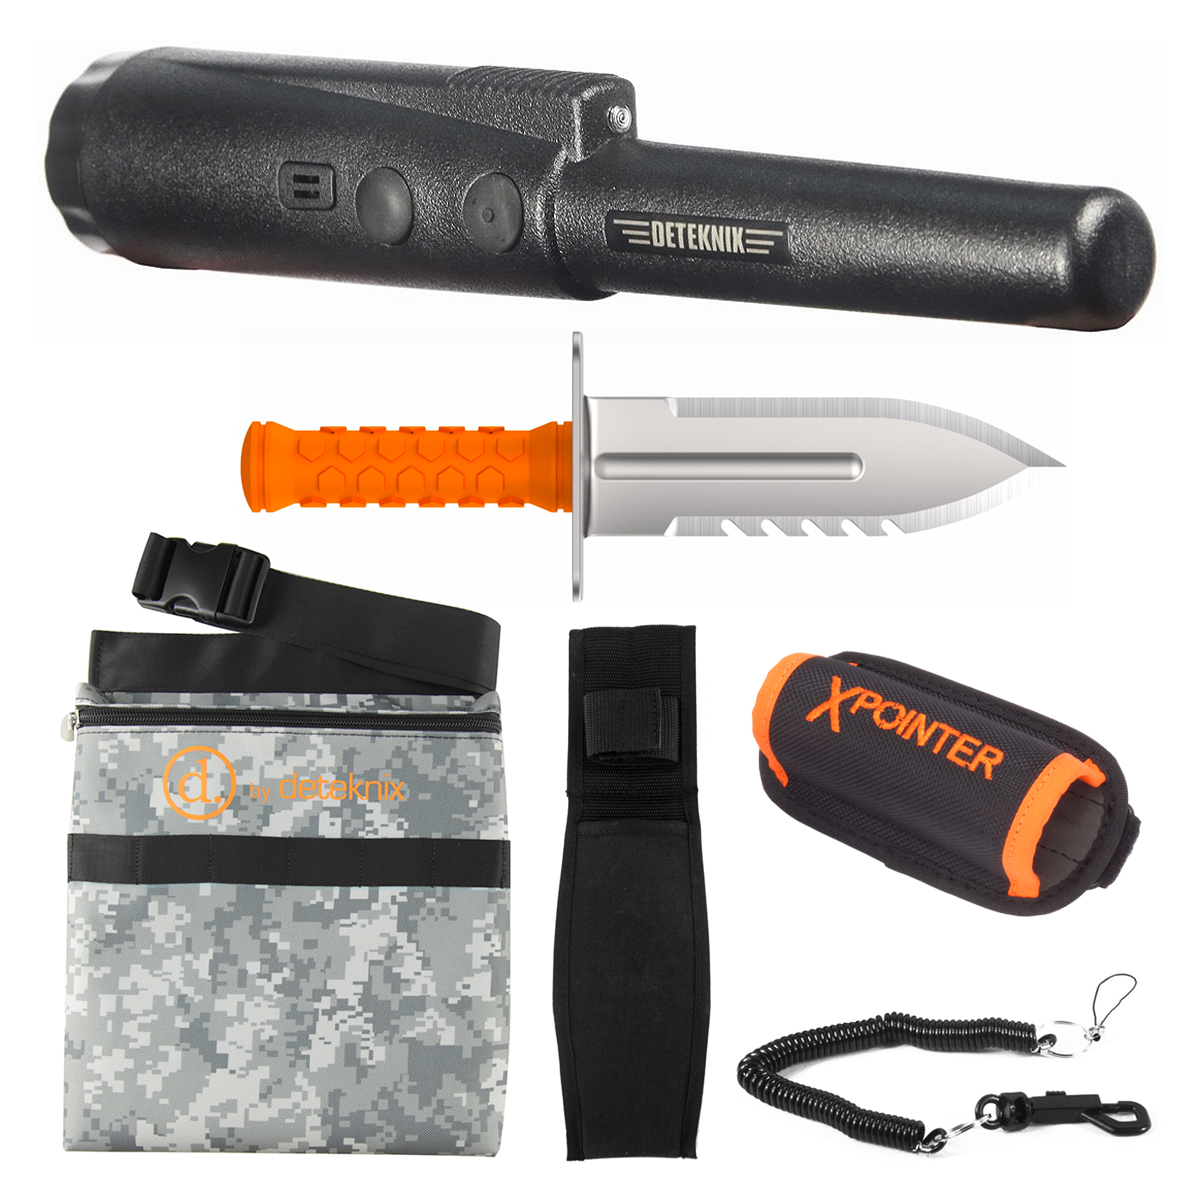 Quest xPointer Land - Black, Digital Camo Pouch & Diamond Digger Tool Right